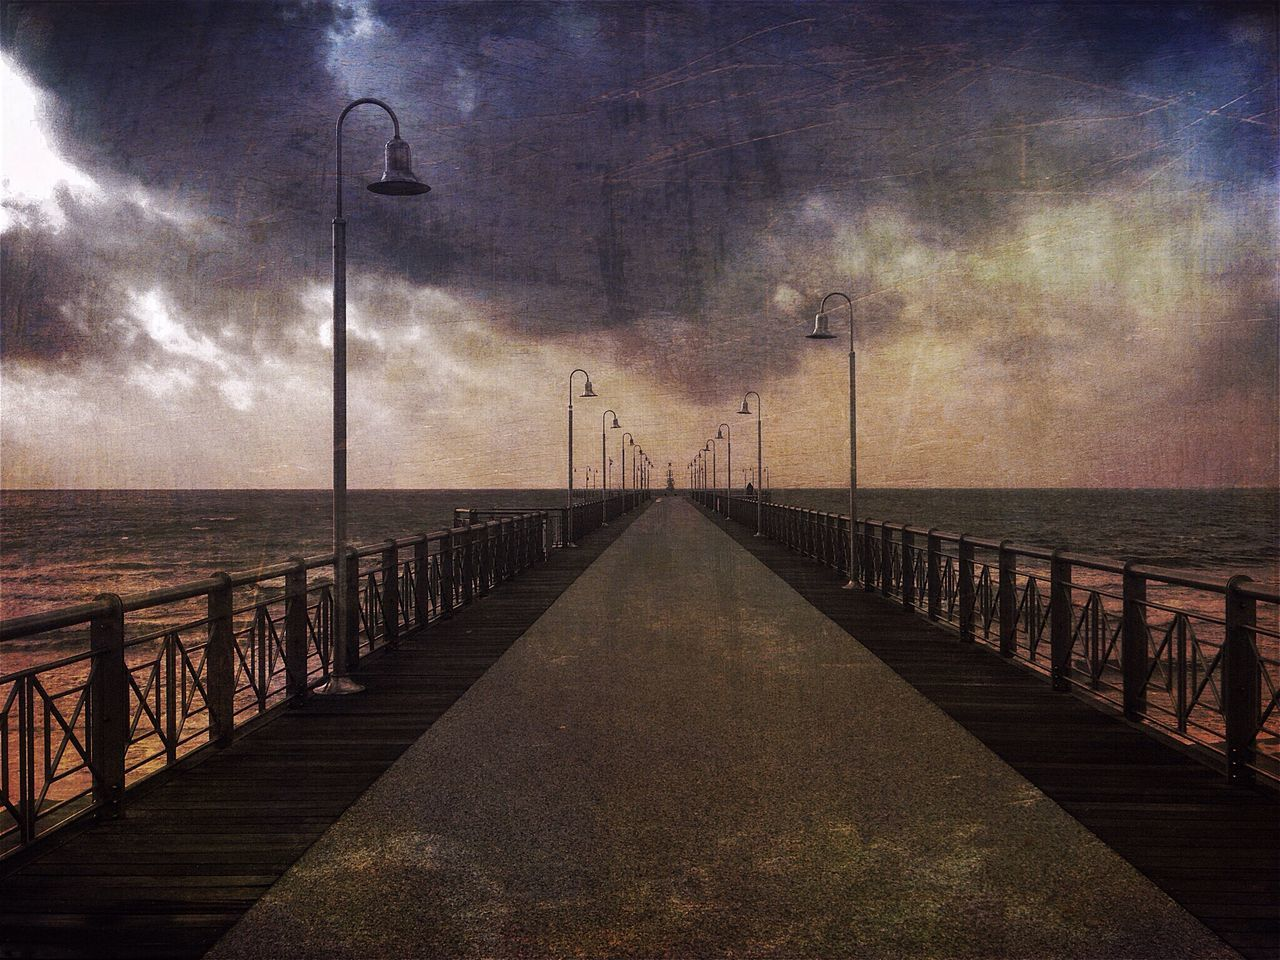 sea, water, horizon over water, tranquil scene, tranquility, pier, sky, the way forward, nature, railing, outdoors, scenics, cloud - sky, beauty in nature, street light, no people, jetty, day, beach